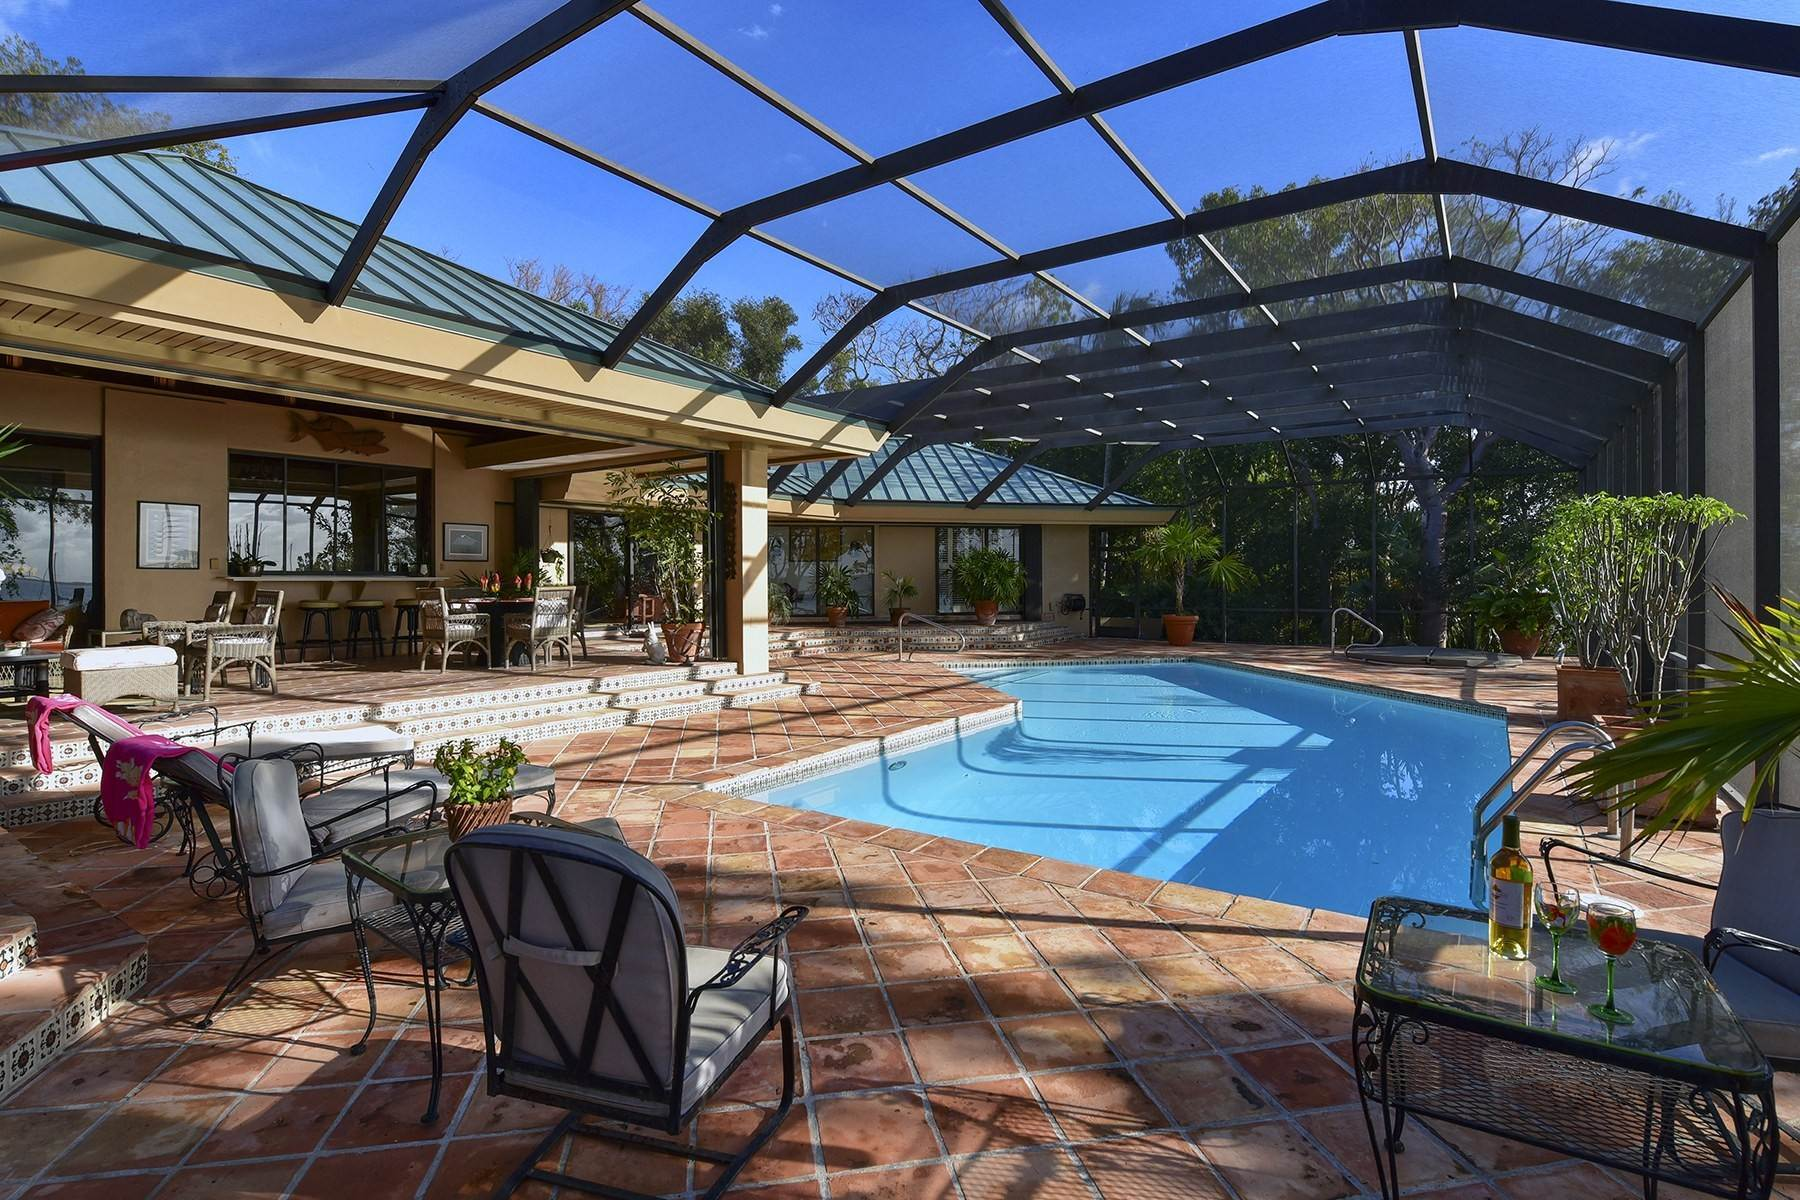 12. Property for Sale at Pumpkin Key - Private Island, Key Largo, FL Pumpkin Key - Private Island Key Largo, Florida 33037 United States